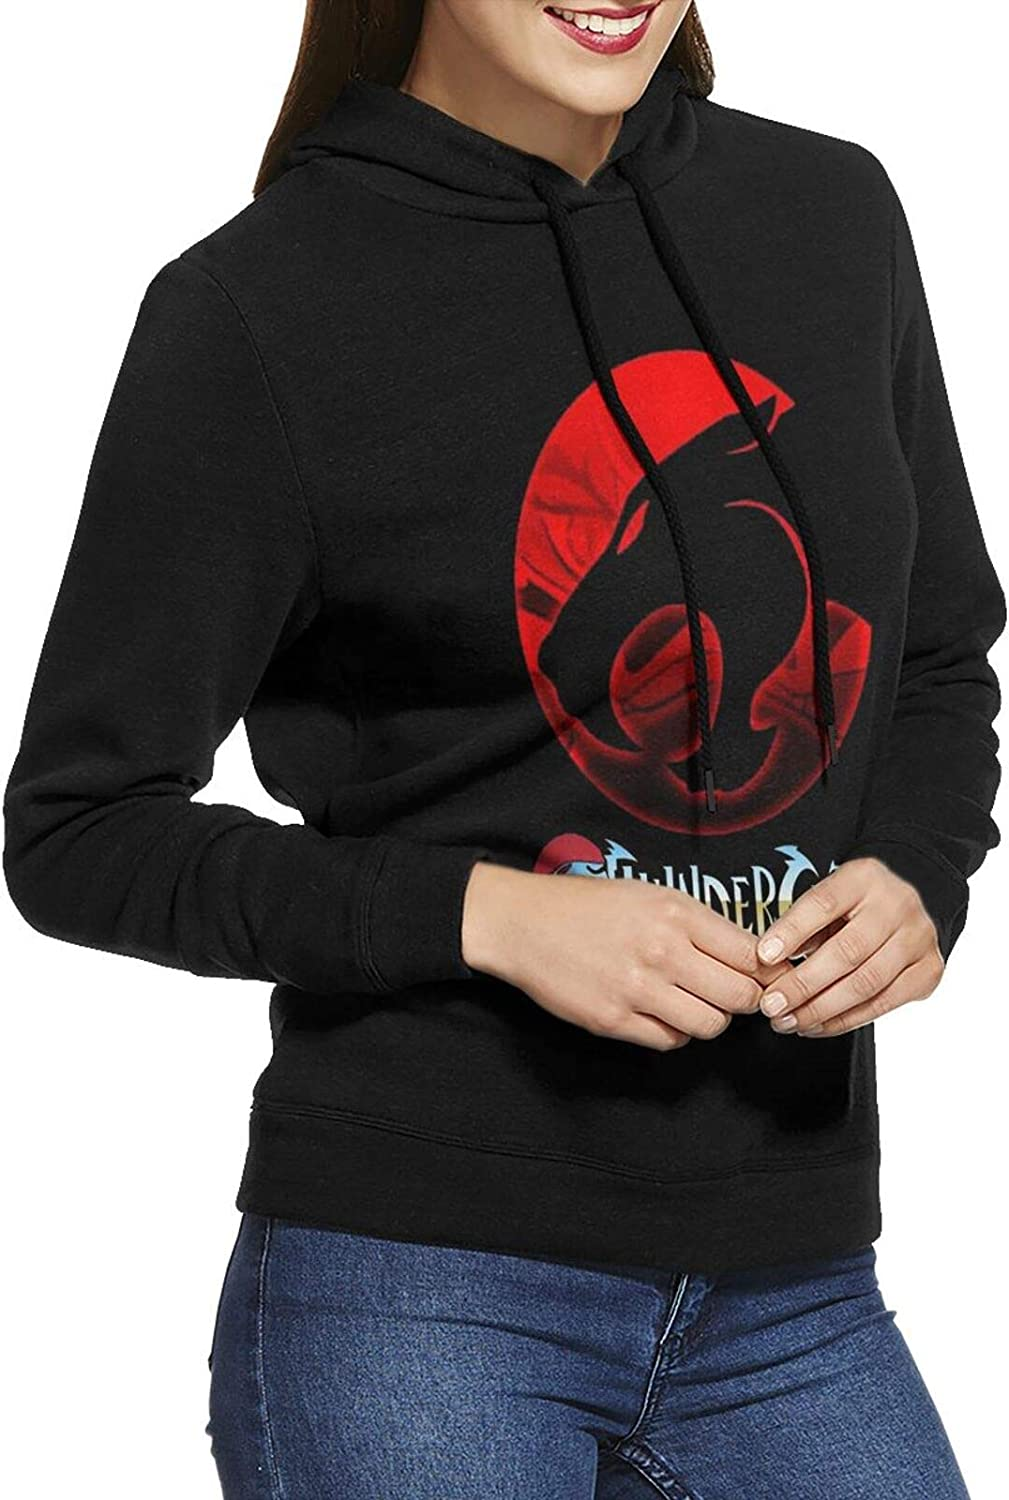 Thundercats Hoodie Women'S Casual Cotton Sleeve At the price Long cheap Sweatshirts